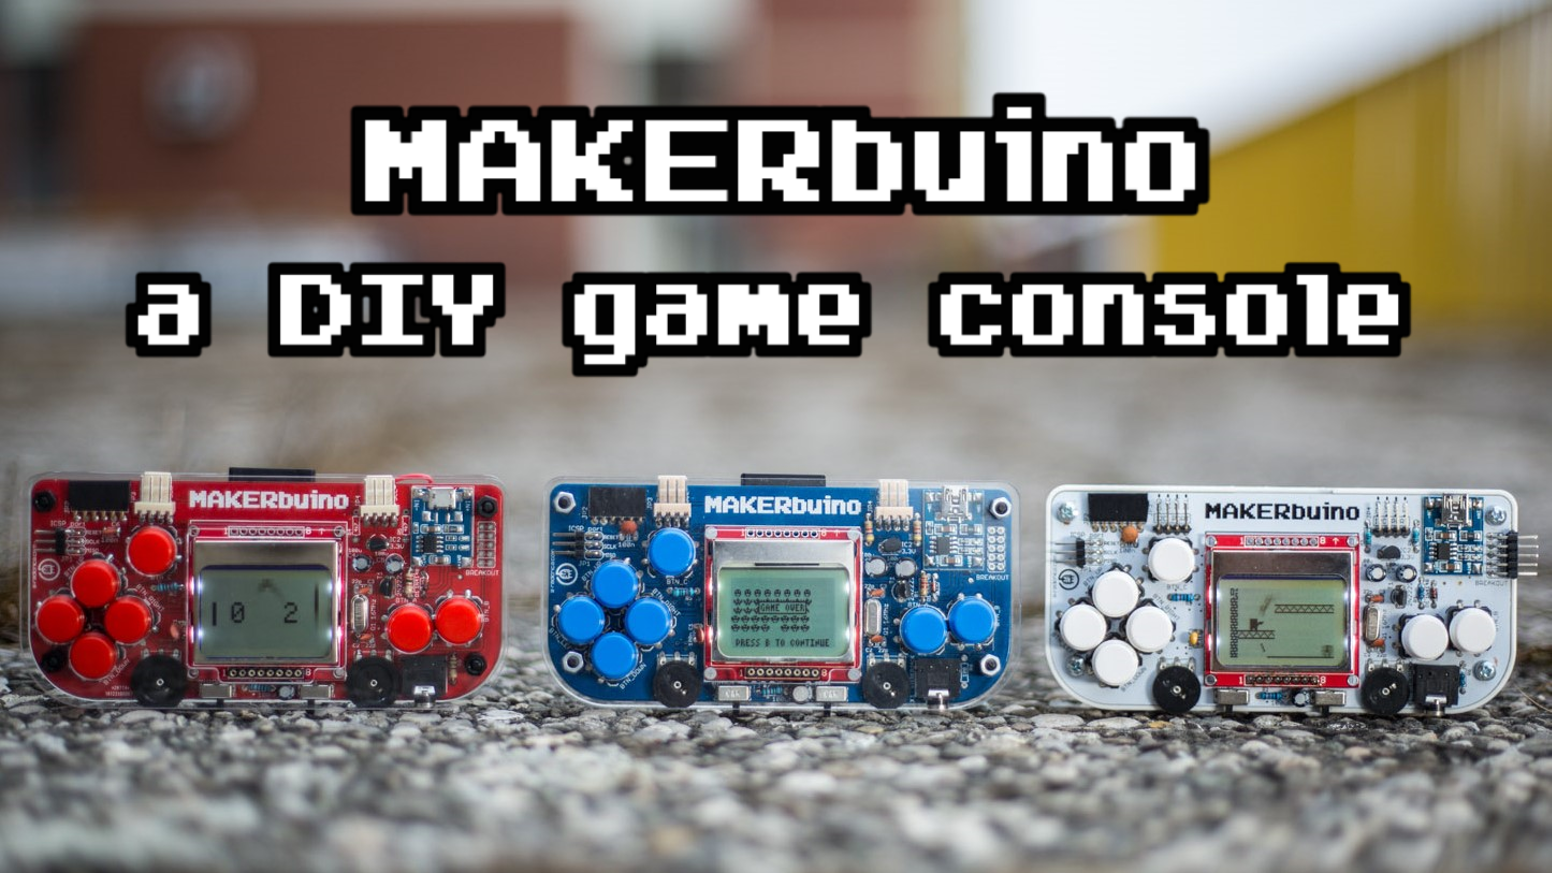 Makerbuino is a handheld retro gaming device that you can build makerbuino is a handheld retro gaming device that you can build yourself its fun educational and hackable solutioingenieria Gallery